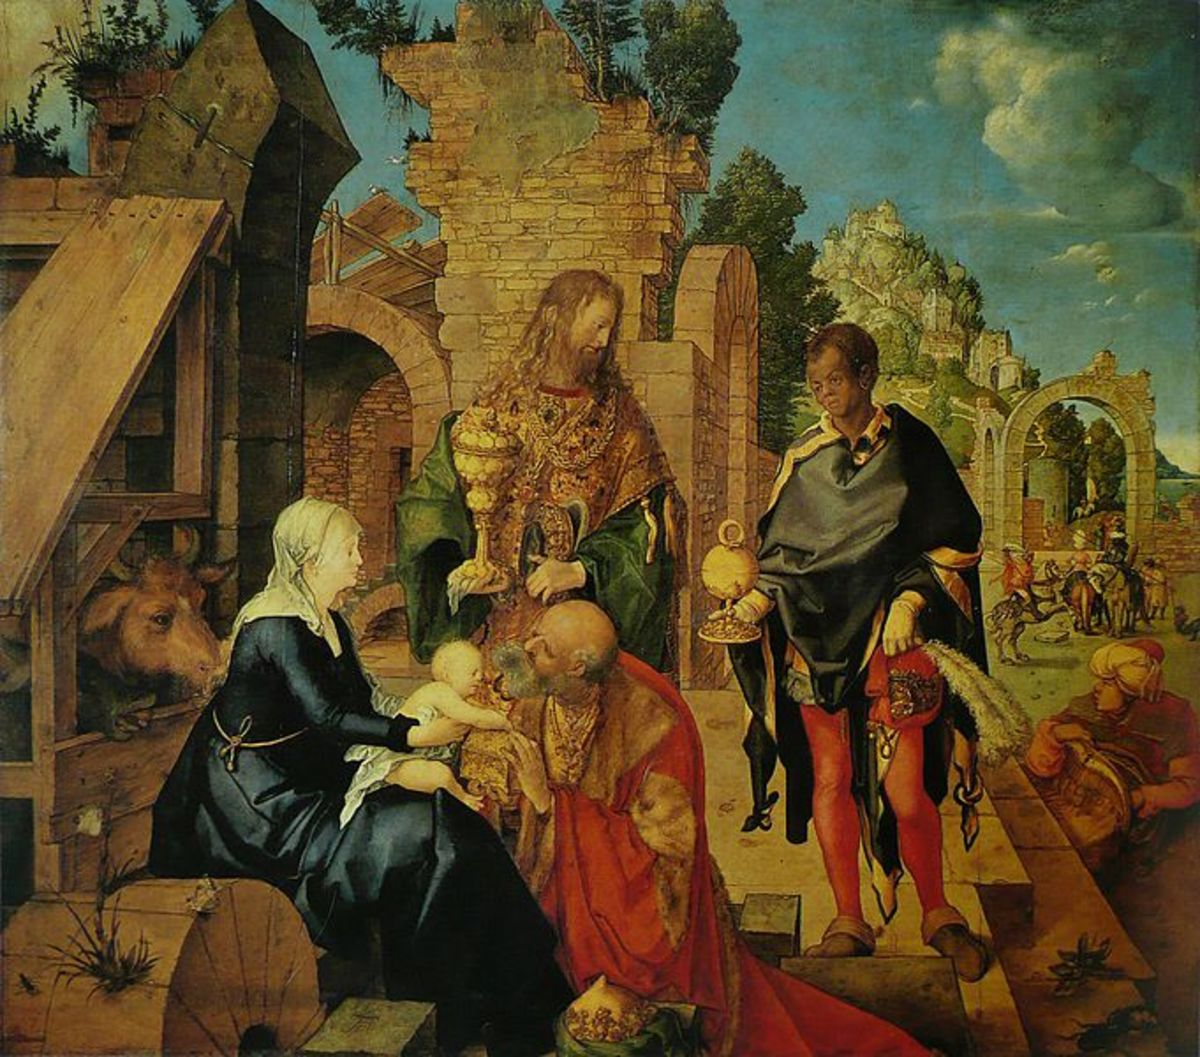 Adoration of the Magi (1504)